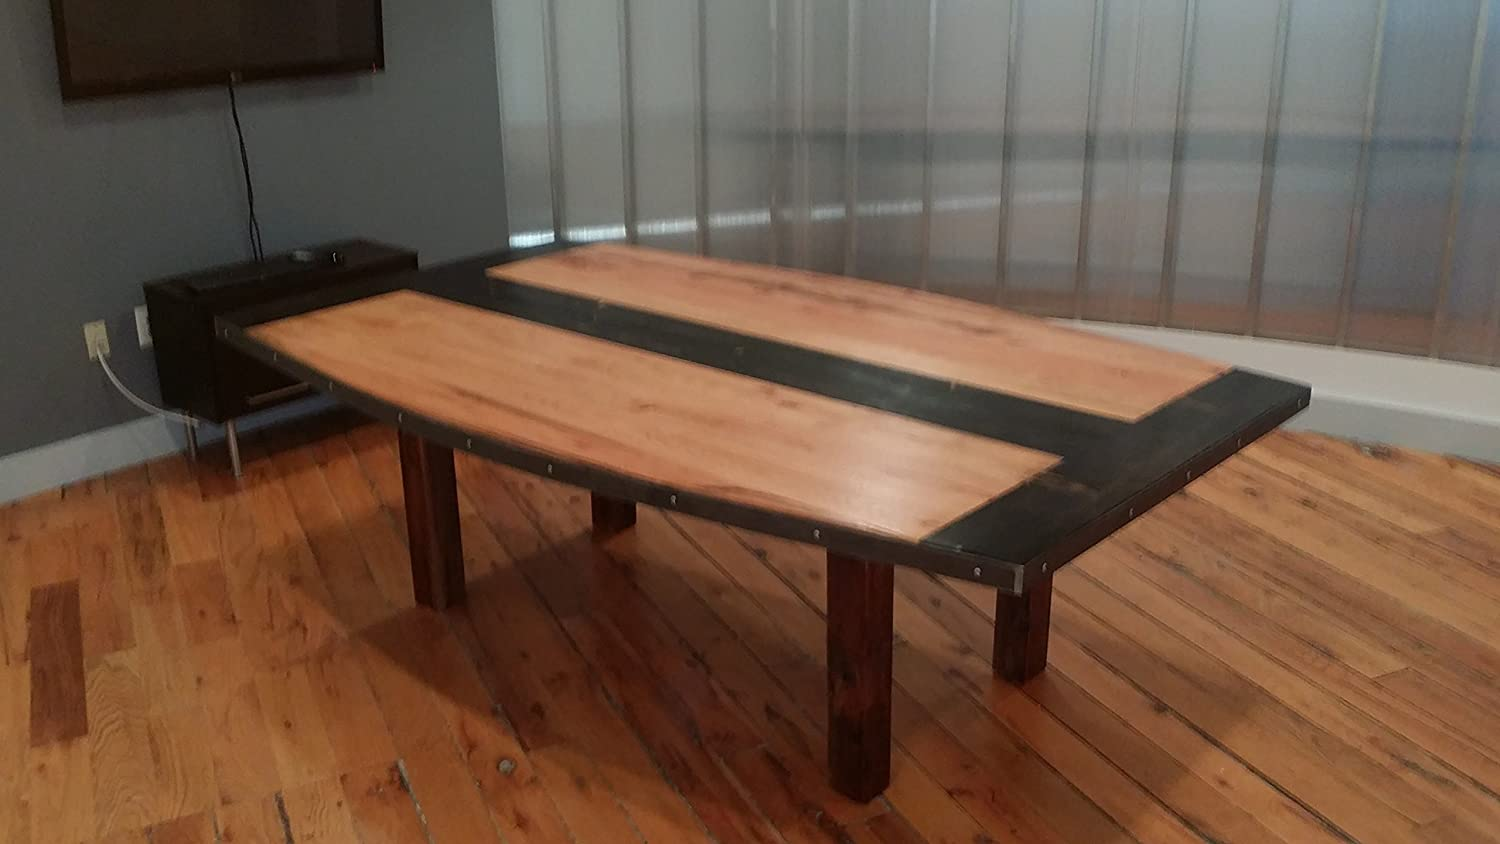 Reclaimed wood conference tables - Amazon Com The Edison Signature Our Handmade Work Conference Or Dining Table Made From Reclaimed Wood Handmade